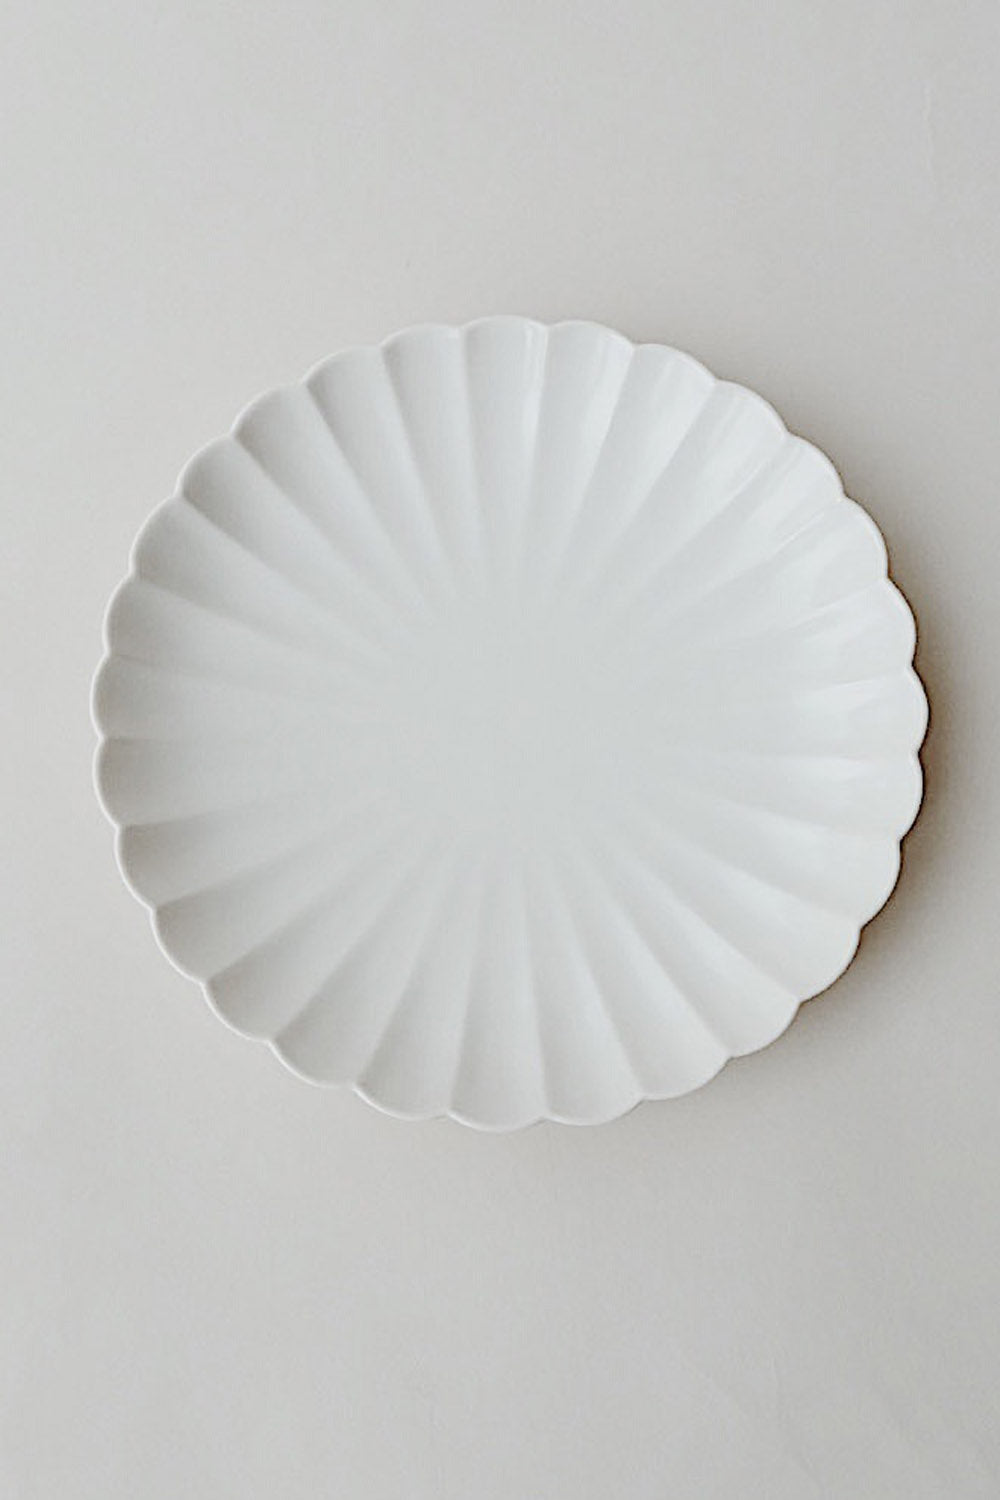 Jicon Chrysanthemum Plate - Large